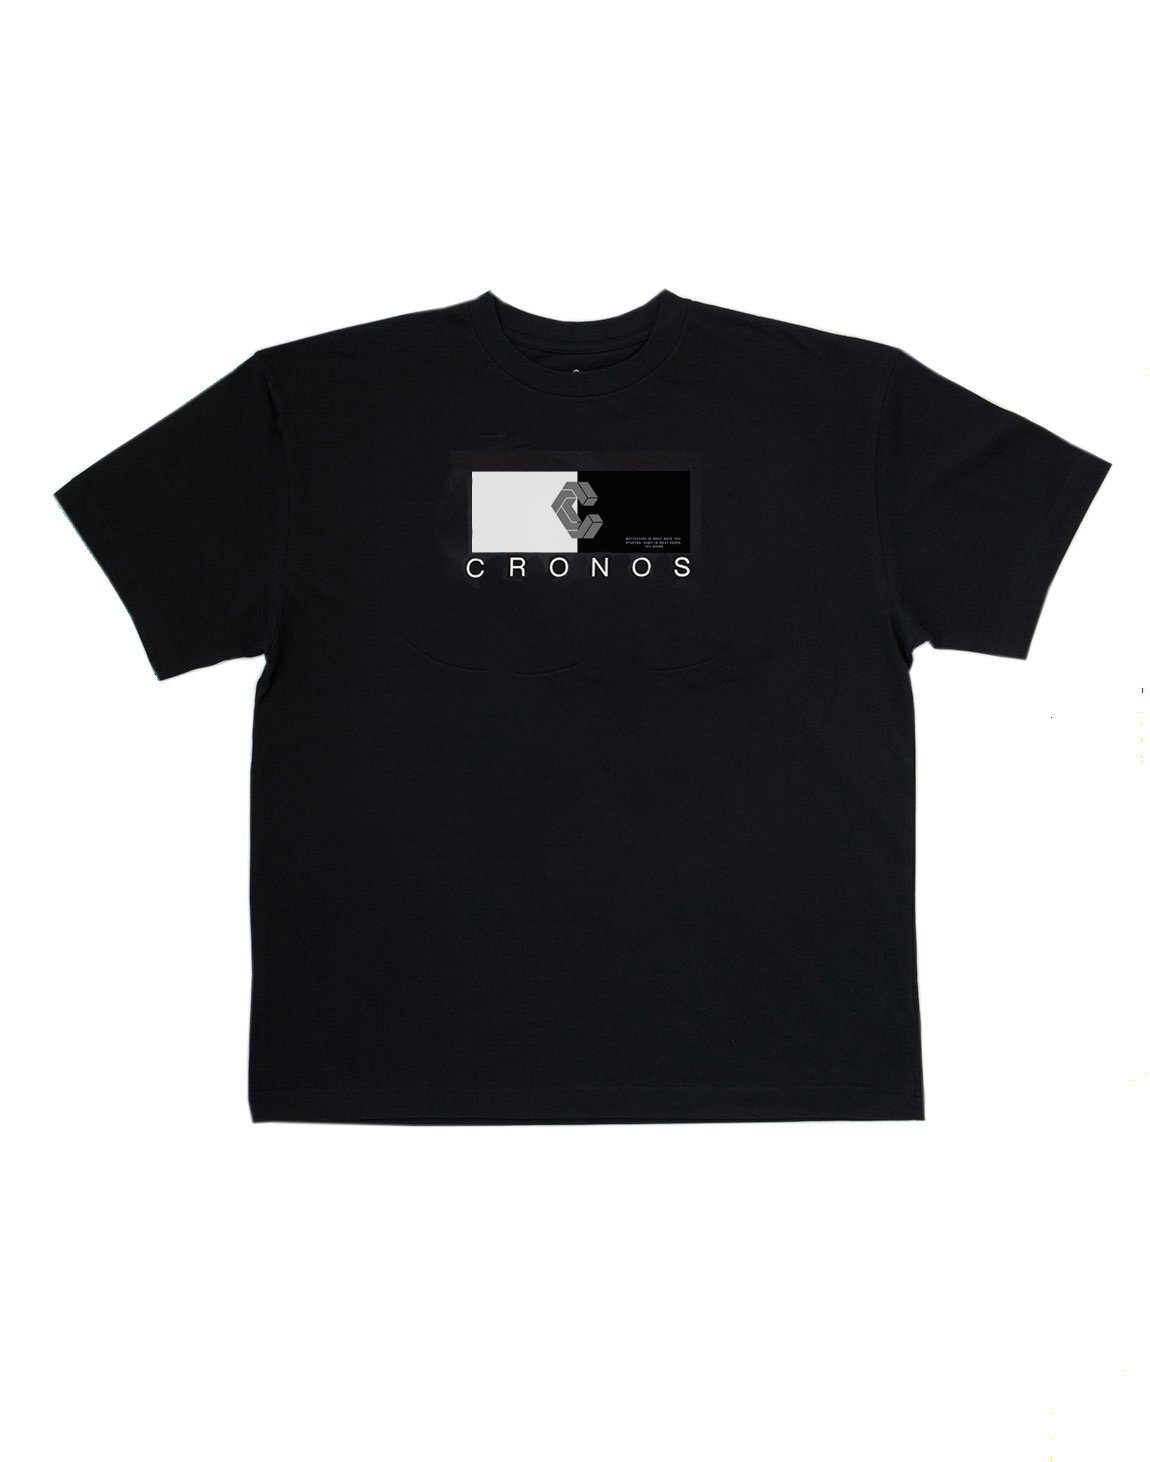 <img class='new_mark_img1' src='https://img.shop-pro.jp/img/new/icons1.gif' style='border:none;display:inline;margin:0px;padding:0px;width:auto;' />CRONOS HALF COLOR T-SHIRT【BLACK】